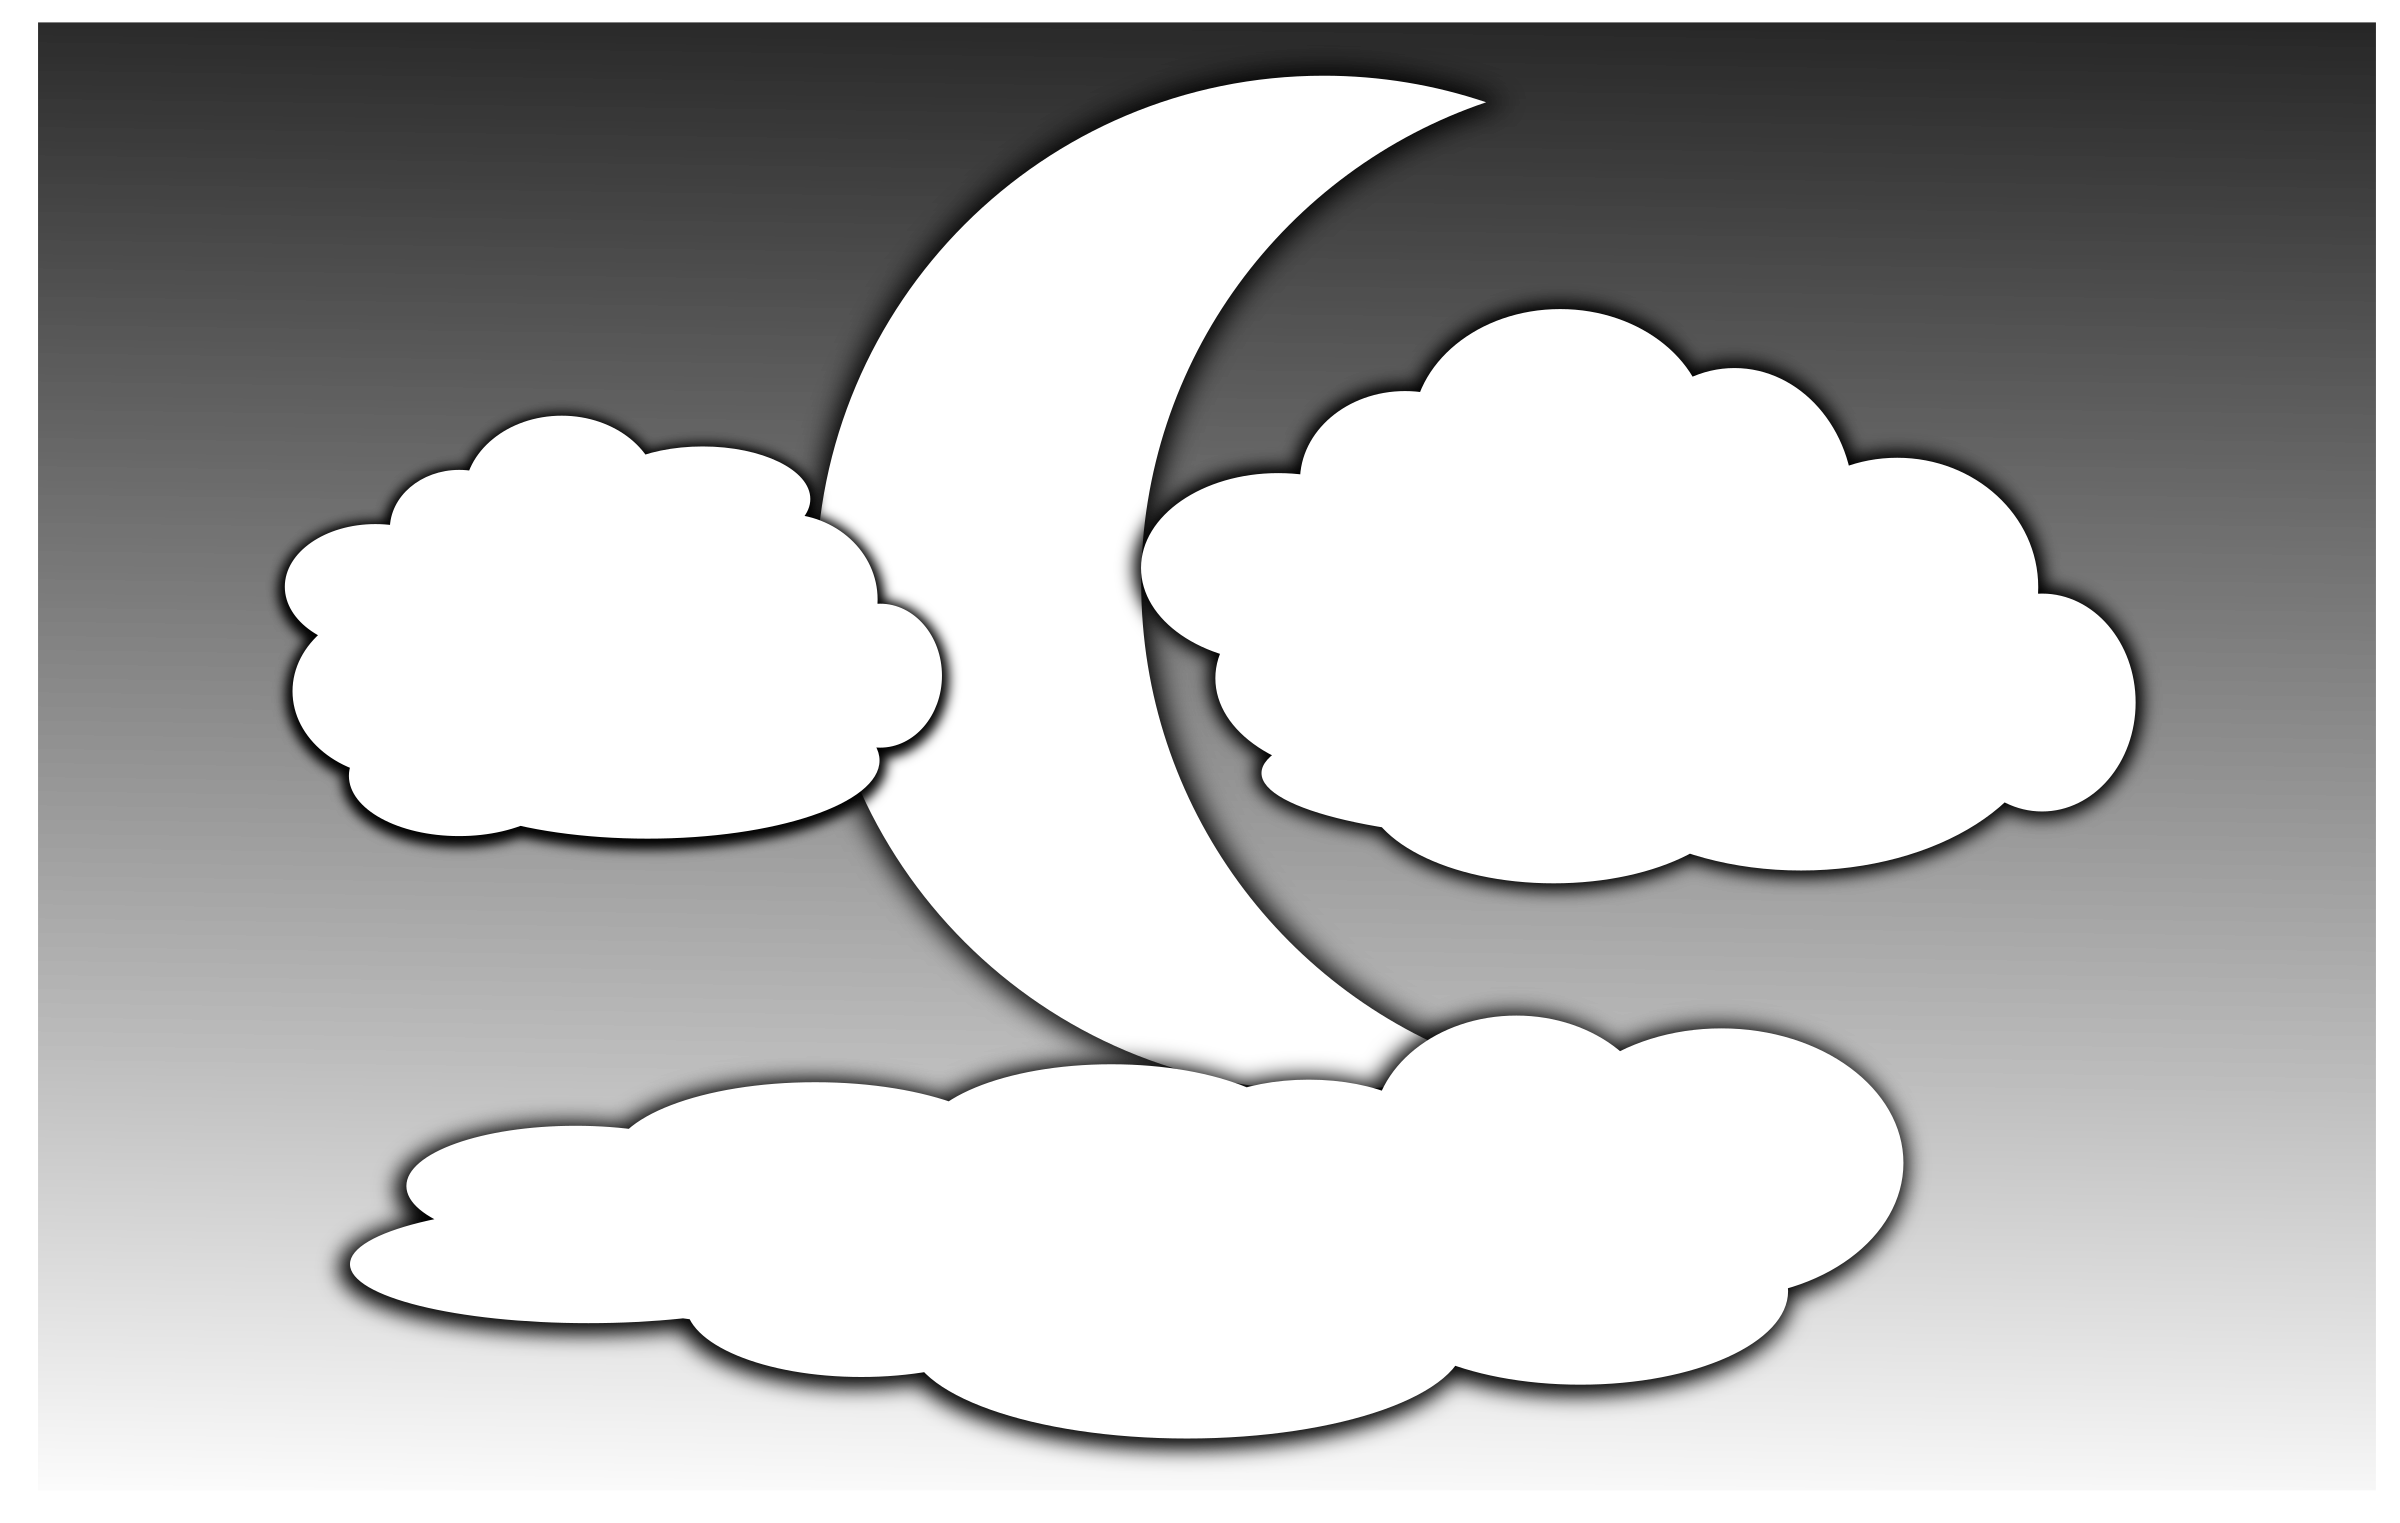 Clouds and the Moon 2 by inky2010